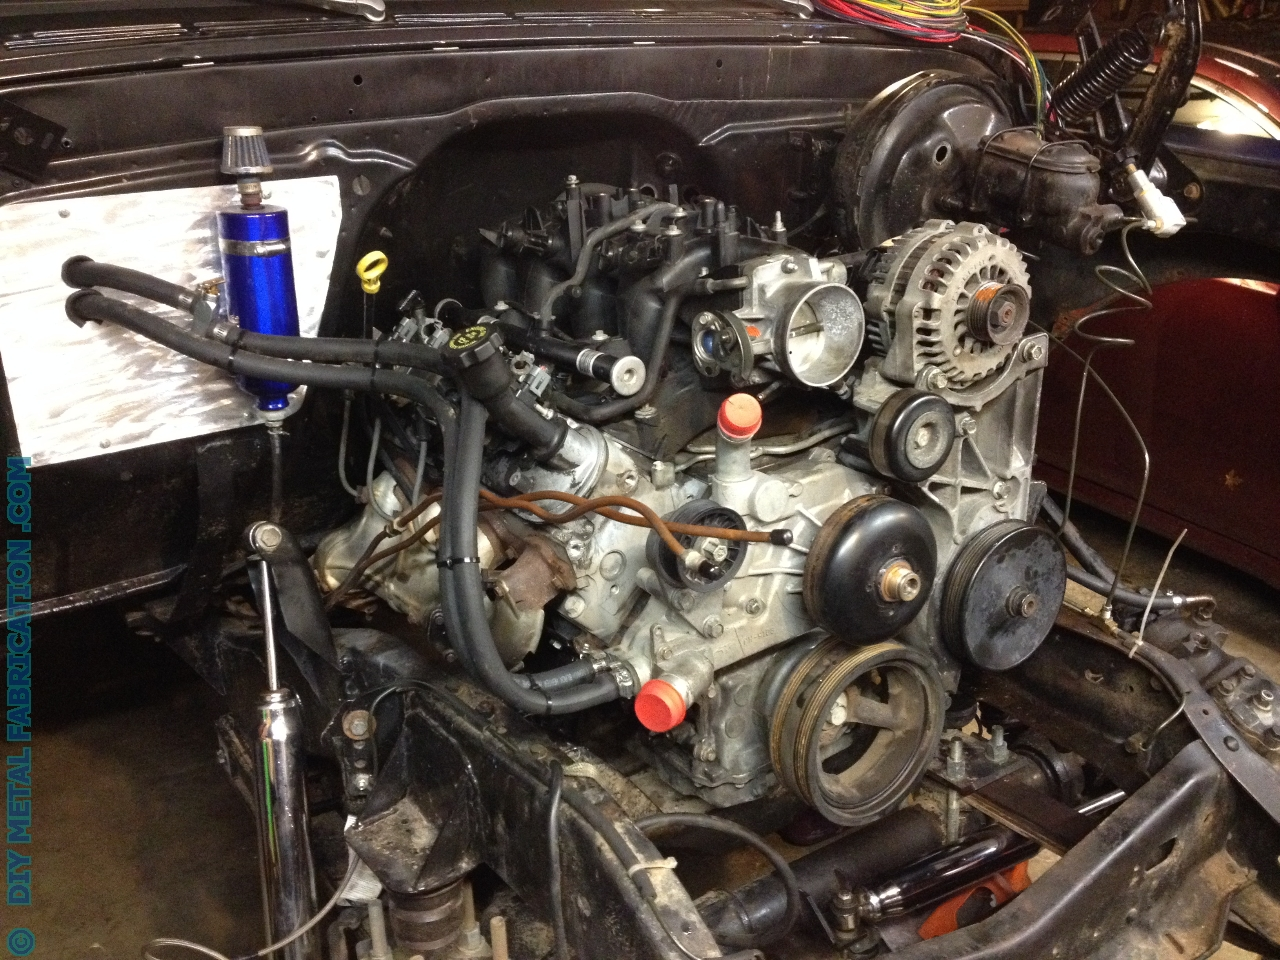 5 3 Swap Into A Chevy C10 With Pictures on 68 camaro wiring layout